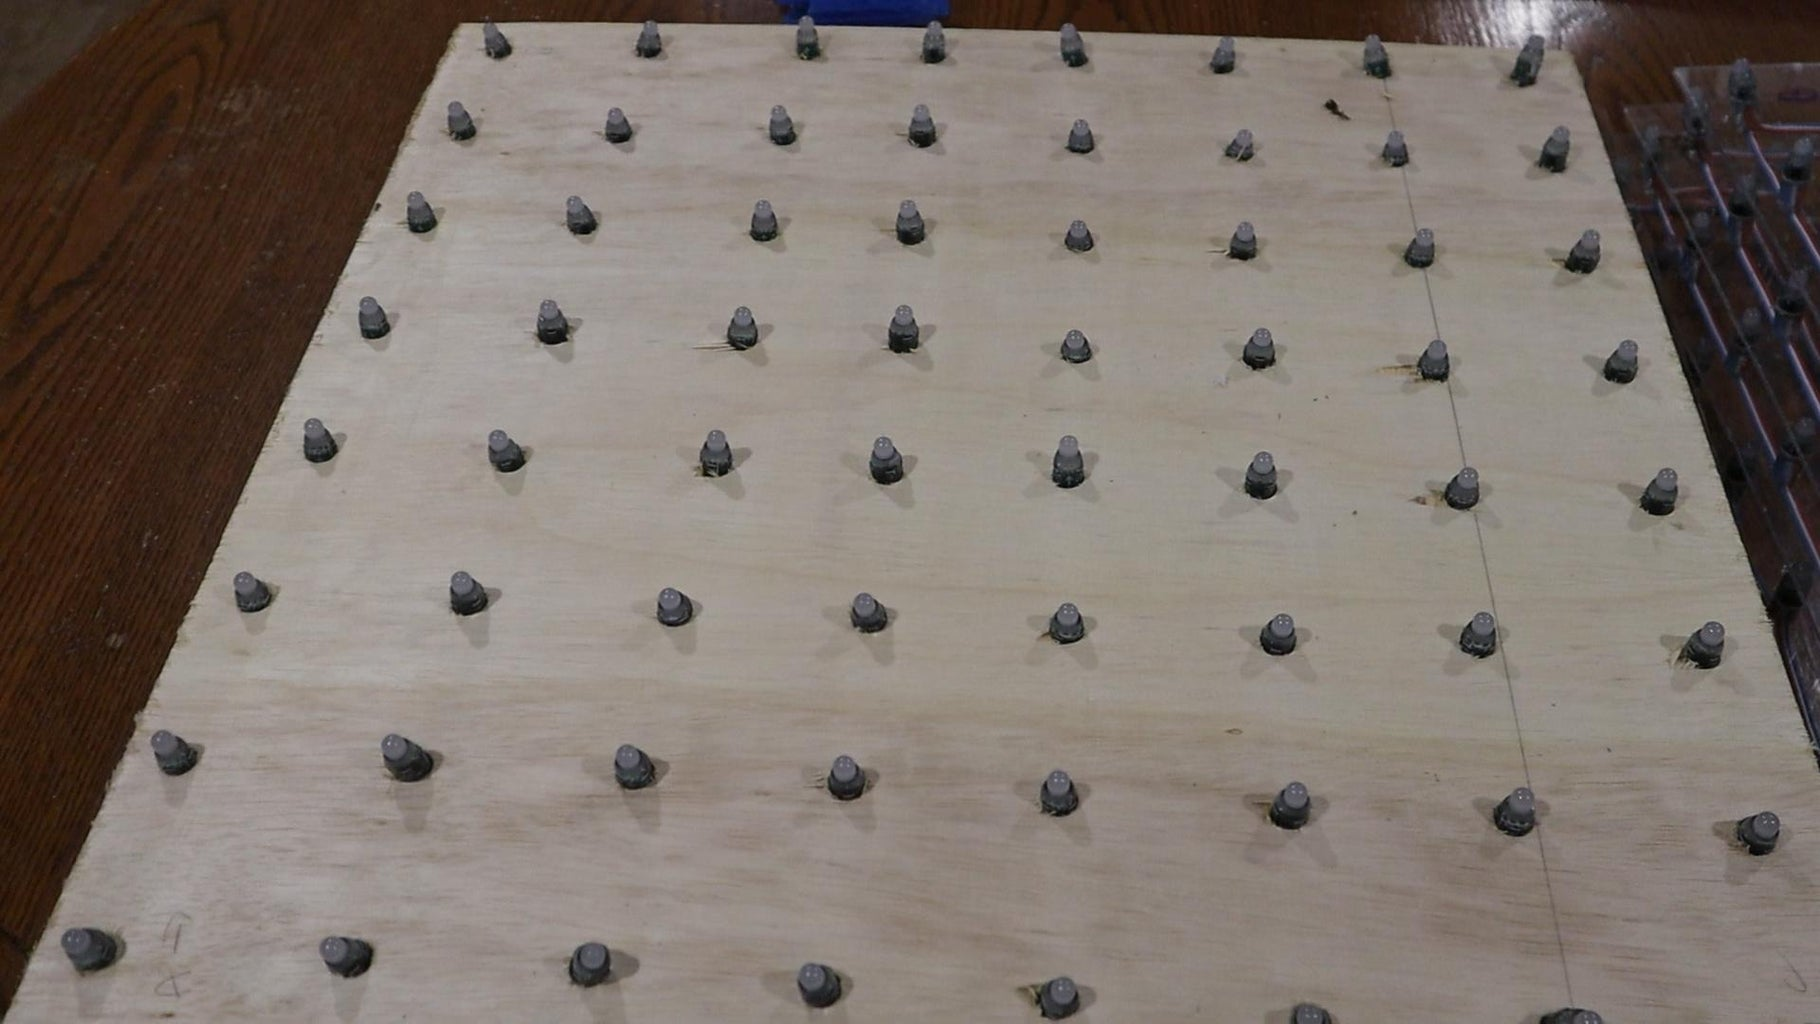 Drill Out Holes for the LEDs